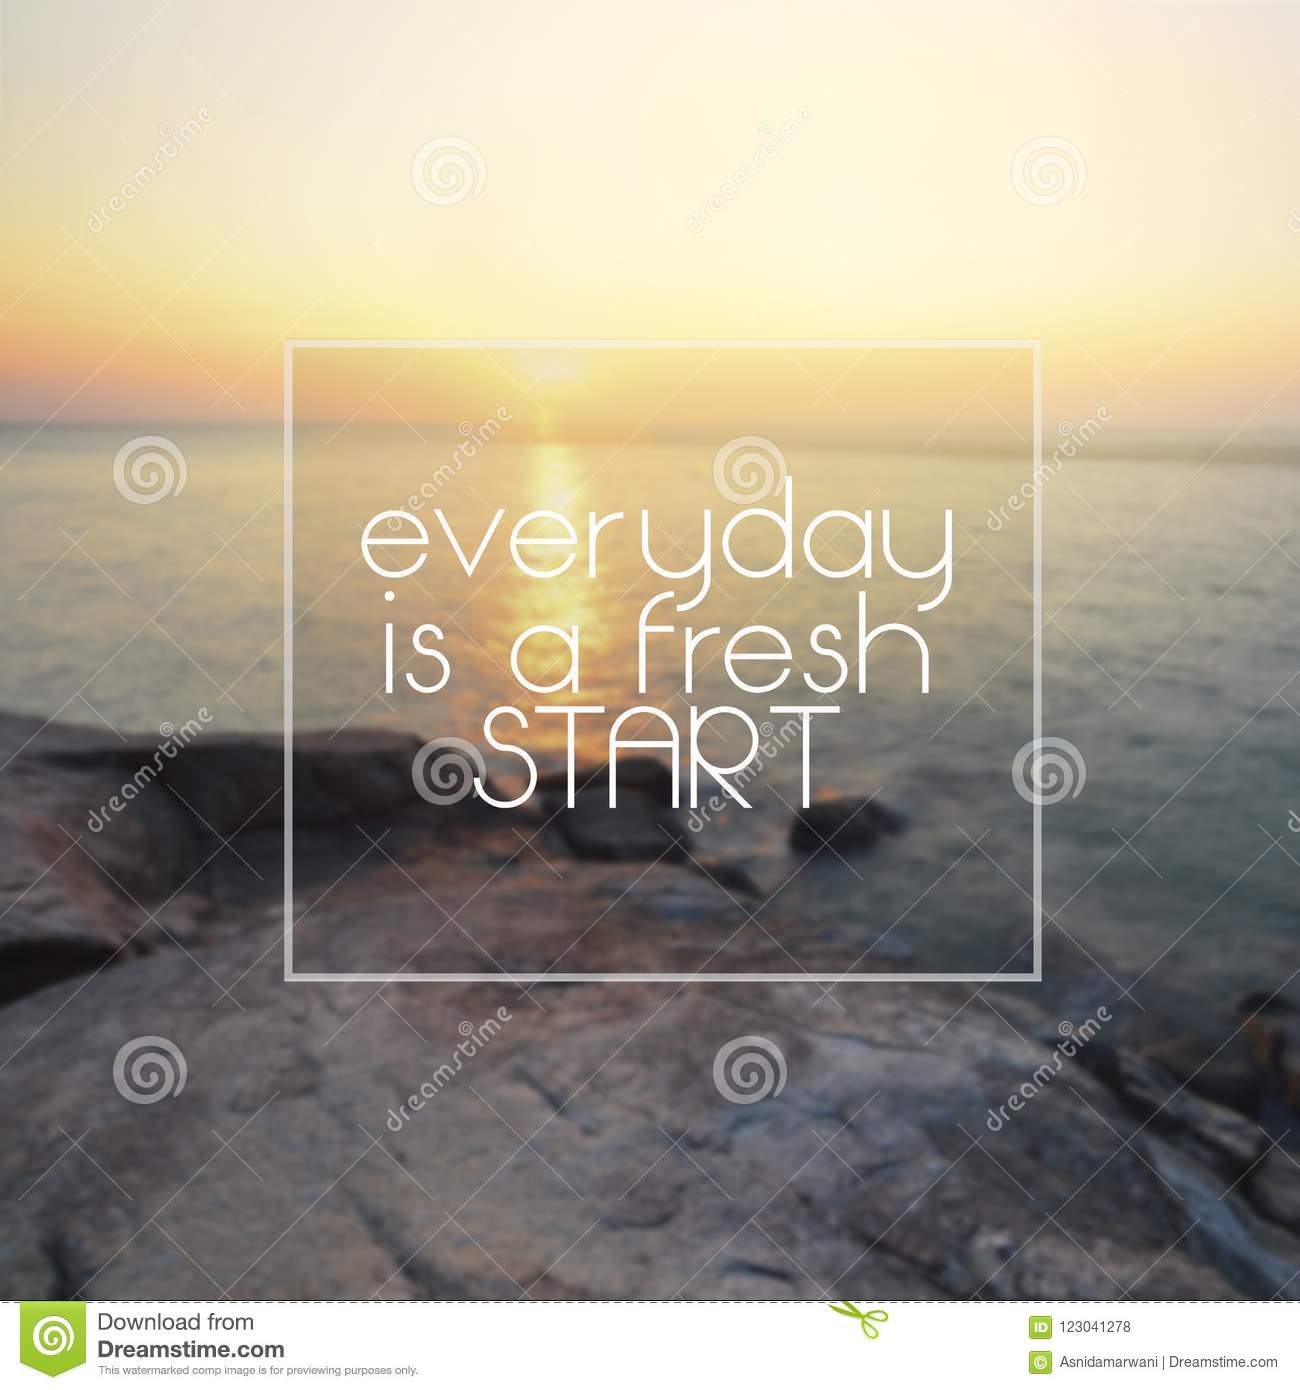 Life Inspirational Quotes Everyday Is A Fresh Start Stock Photo